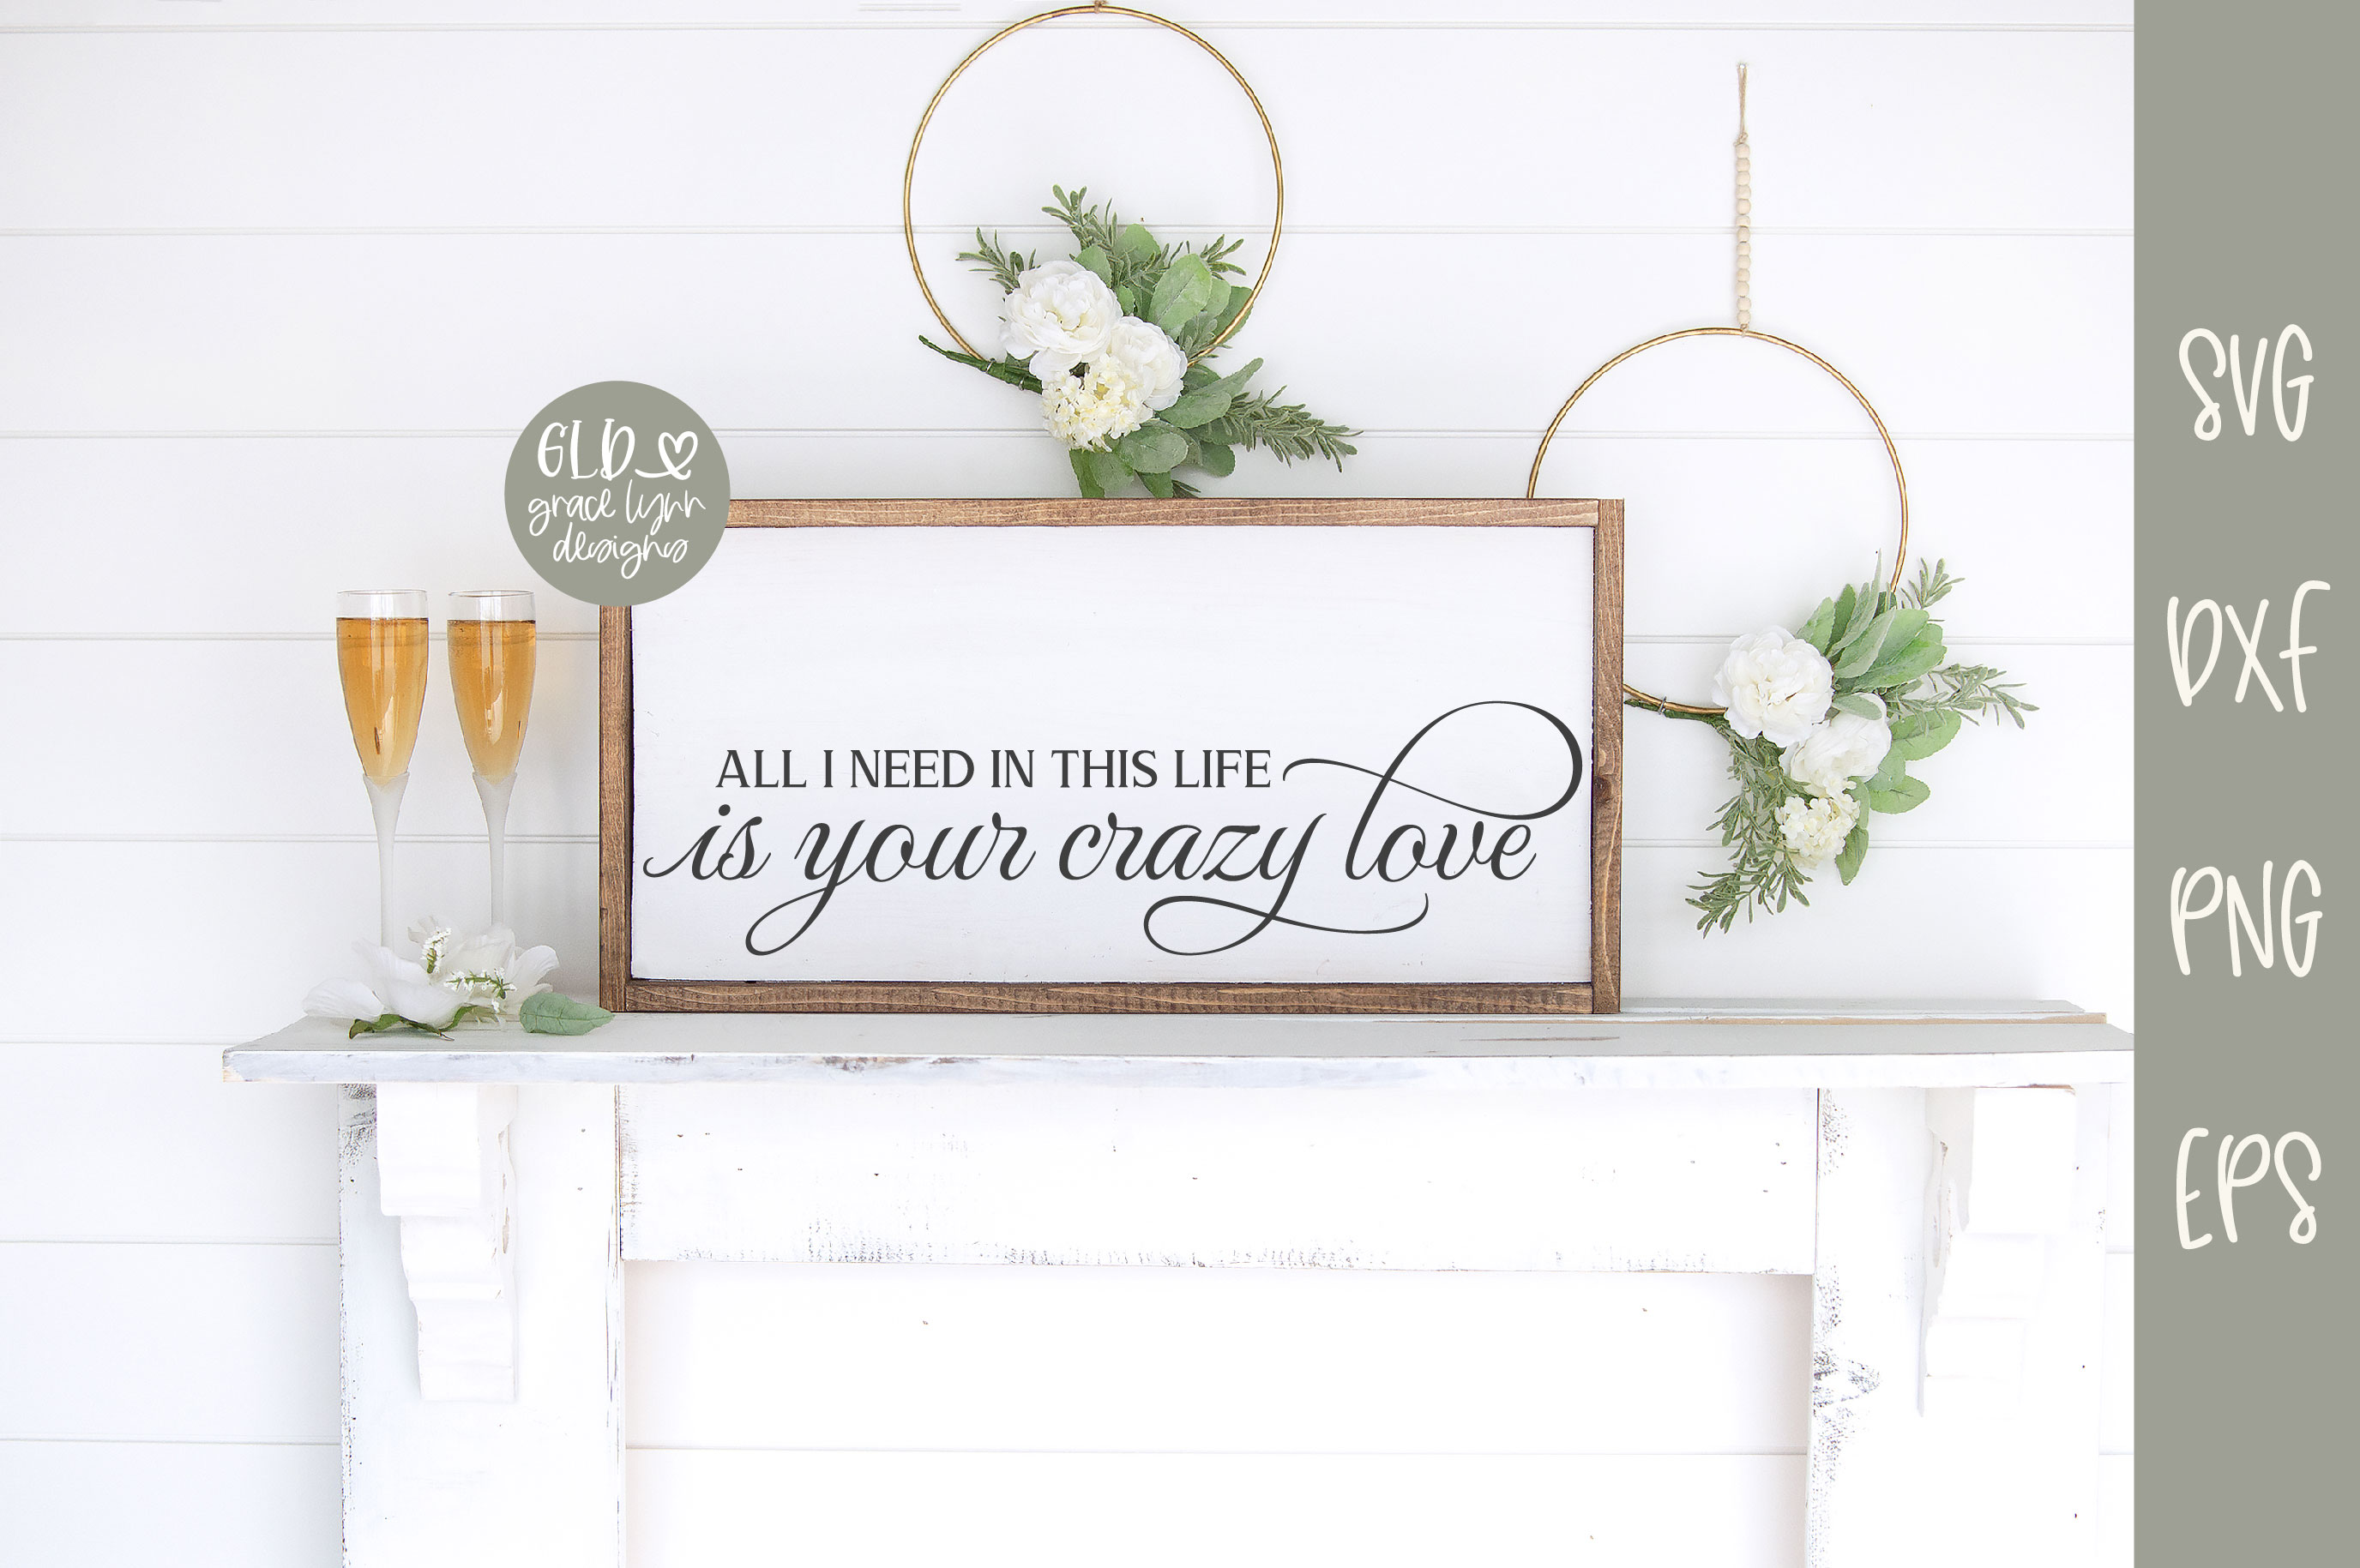 All I Need In This Life Is Your Crazy Love - Wedding SVG example image 2